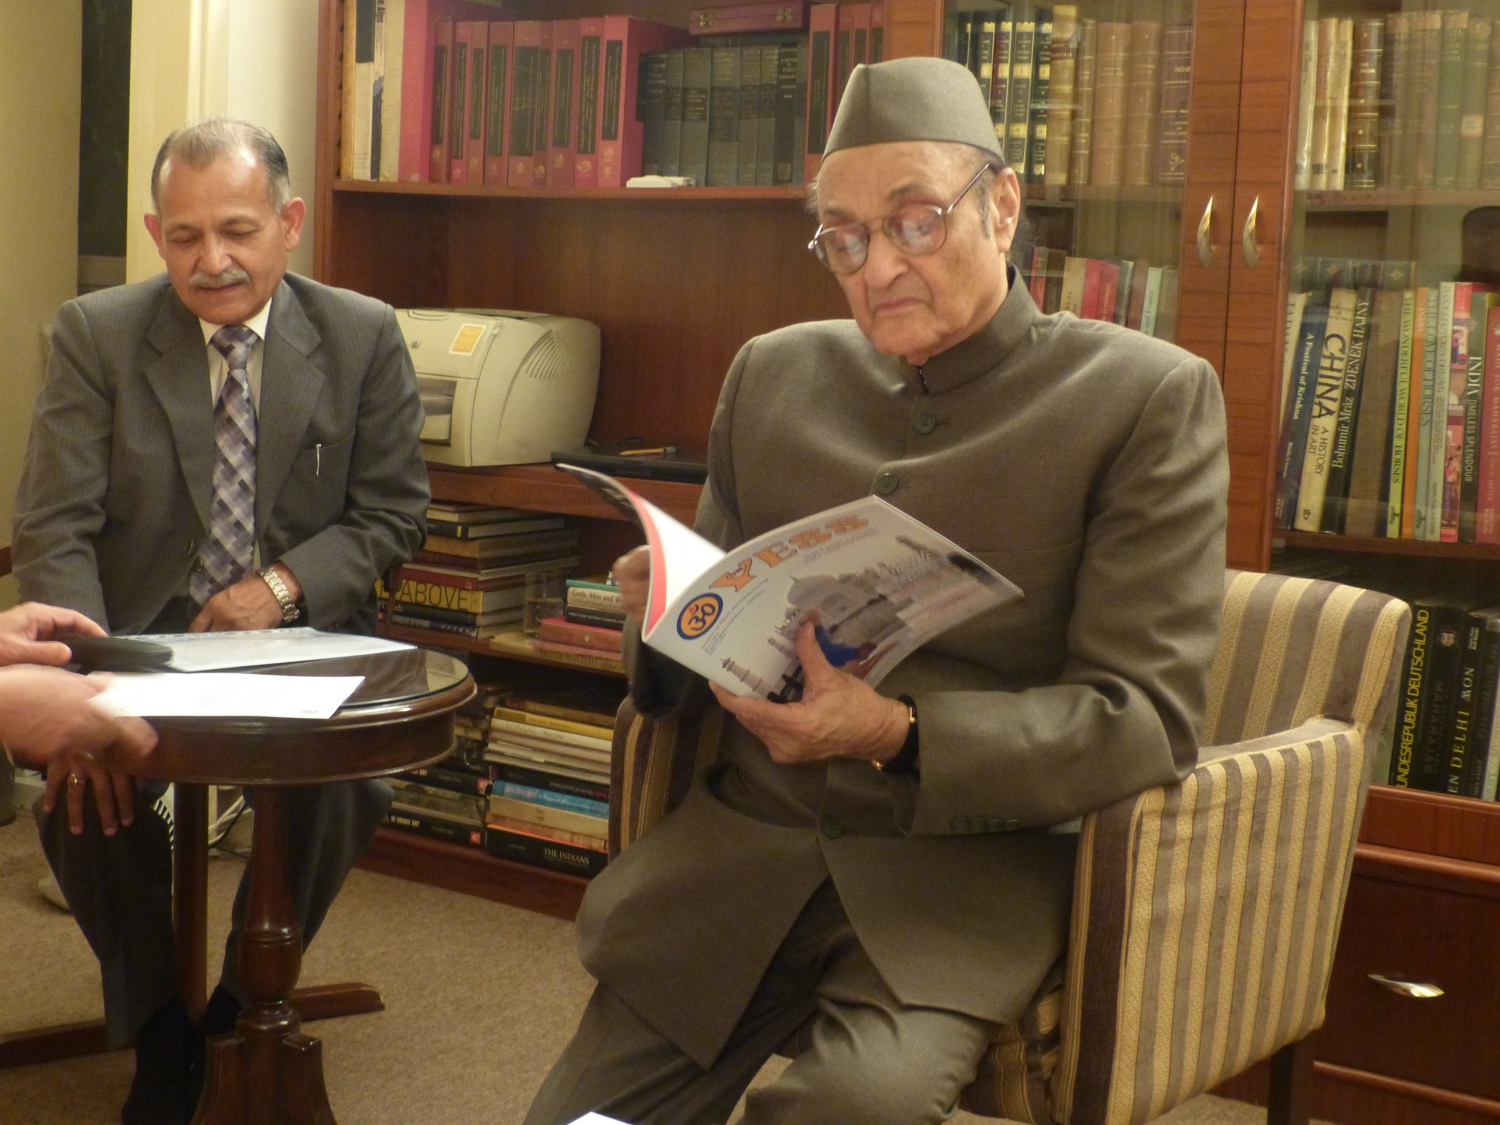 Meeting of H.H. Jagat Guru Amrta Sūryānanda Mahā Rāja with Karan Singh, Adviser of Manmohan Singh, Former Prime Minister of India - India, Dillí - 2013, December